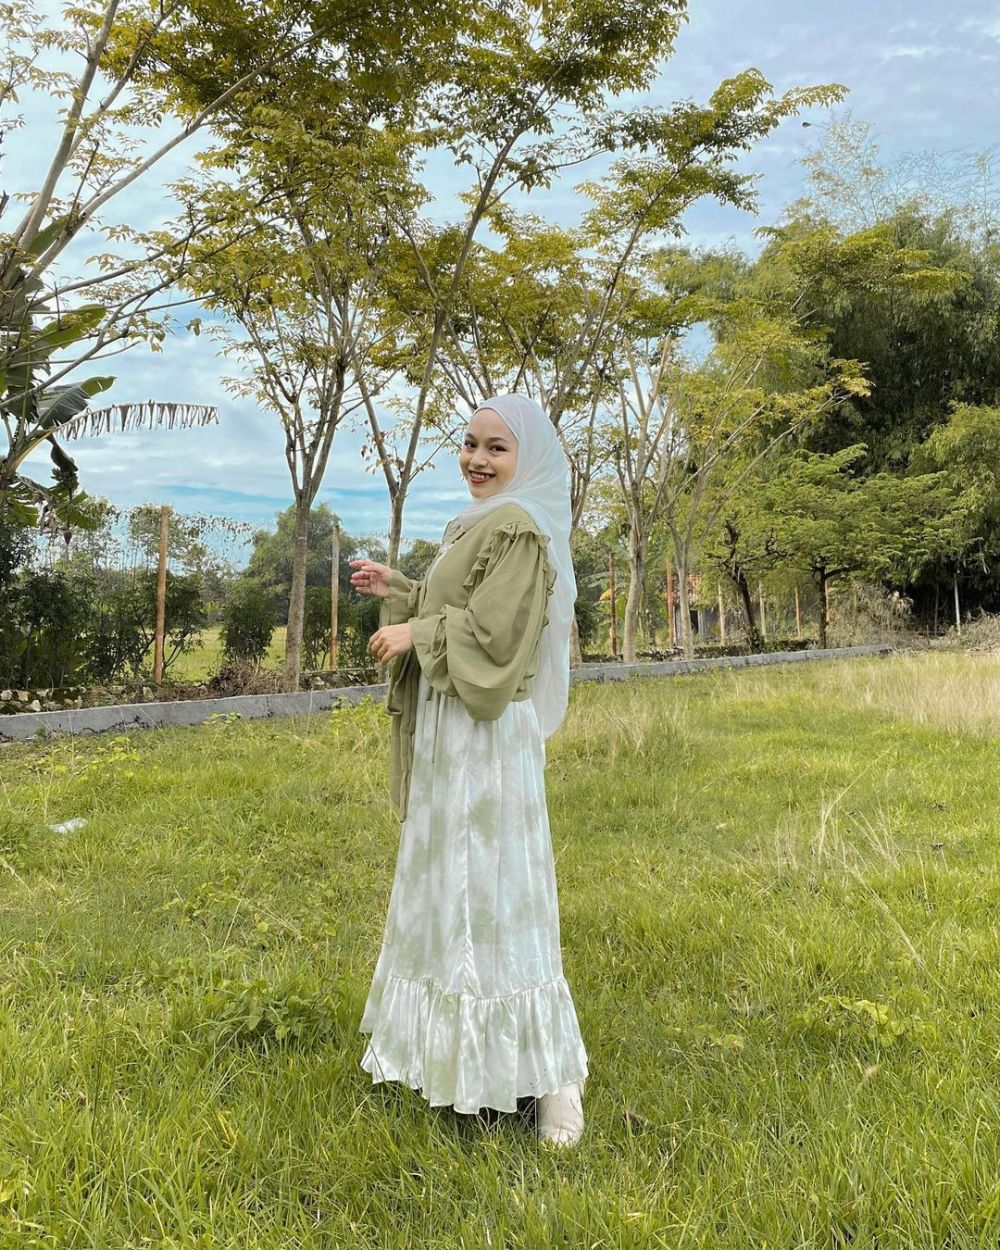 10 Ide Mix and Match Outerwear ala Chichi Annisa, Casual Hingga Cute!